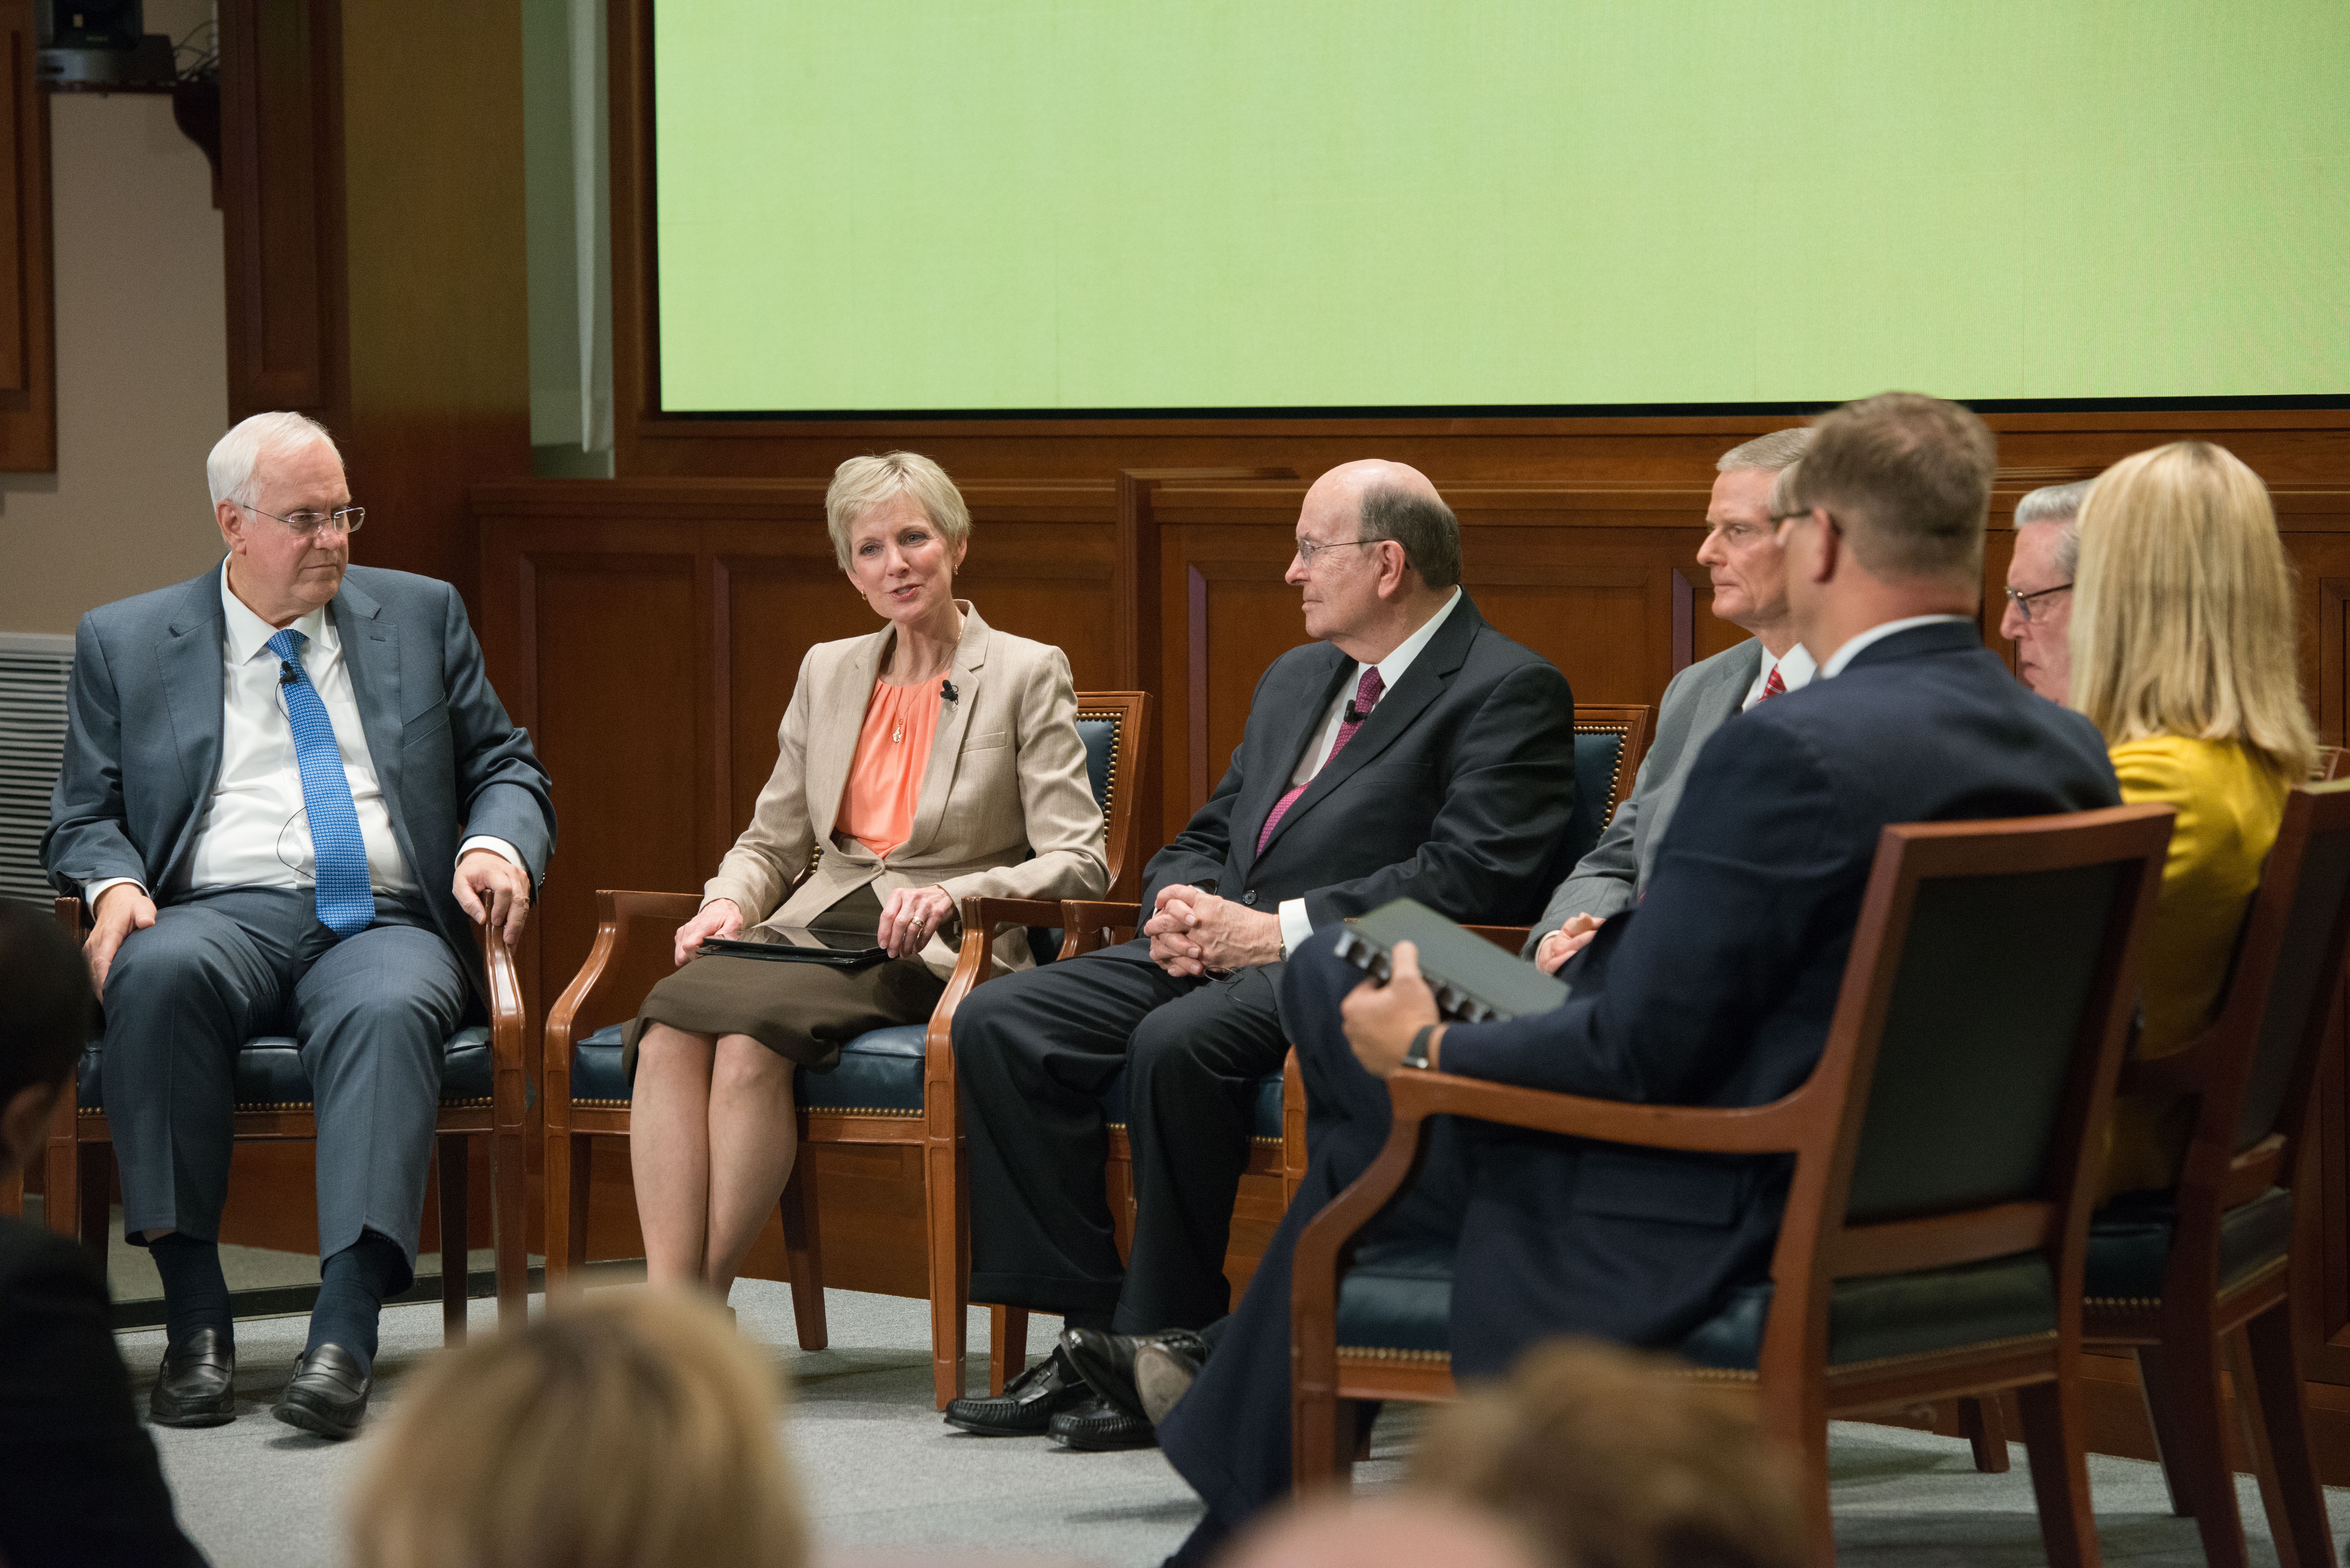 A Worldwide broadcast to Pathway students around the world. The theme was over coming obstacles with messages from Elder Jeffrey R. Holland and other members of the Church Board of Education, including Elder David A. Bednar, Elder Quentin L. Cook, Sister Jean B. Bingham, and Elder Robert C. Gay along with Elder Kim B. Clark, Church Commissioner of Education, and President Clark G. Gilbert with his wife, Christine.